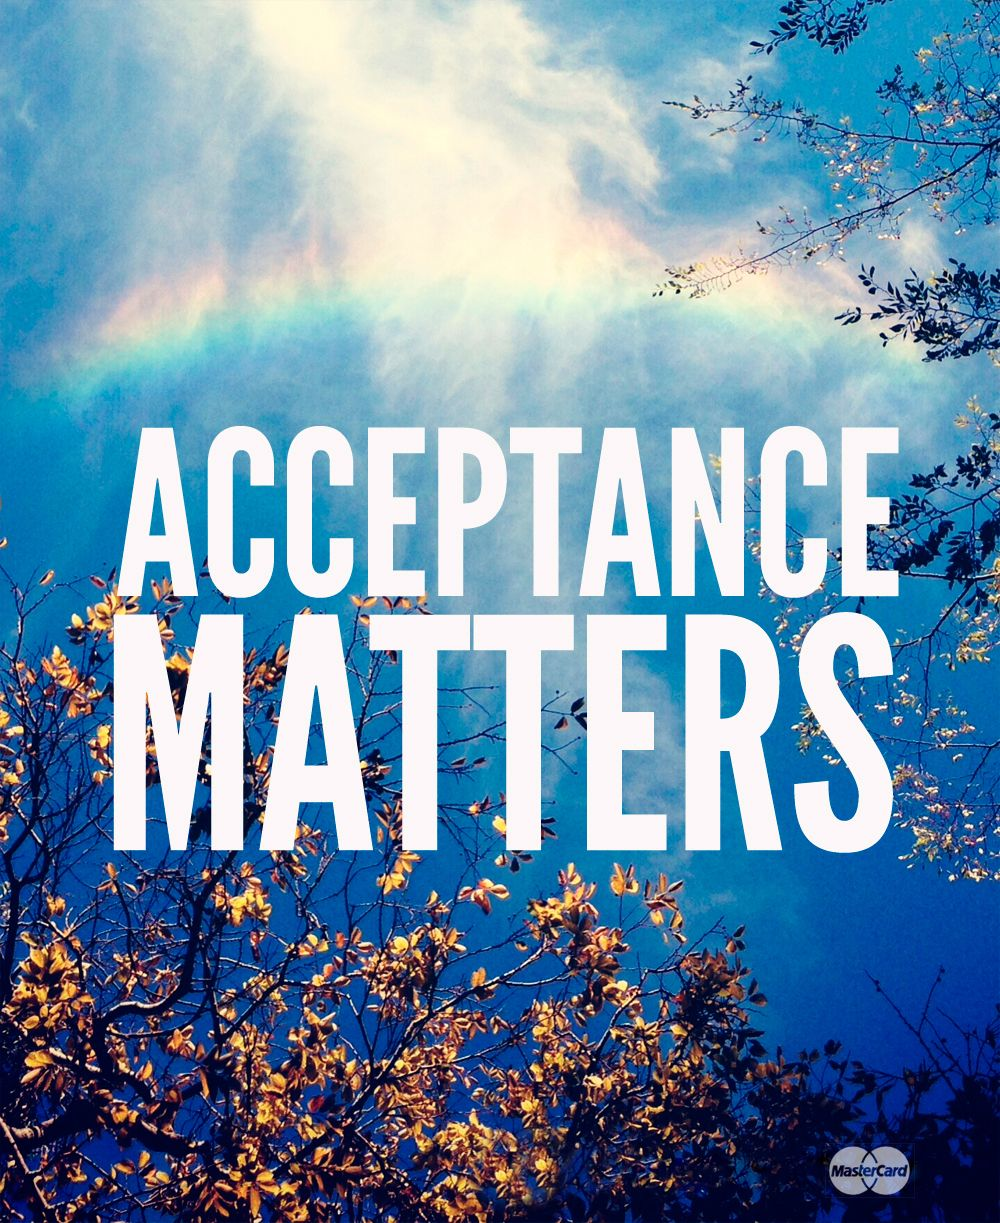 Pride. Period. #AcceptanceMatters art by #justinablakeney #commissionedbymastercard